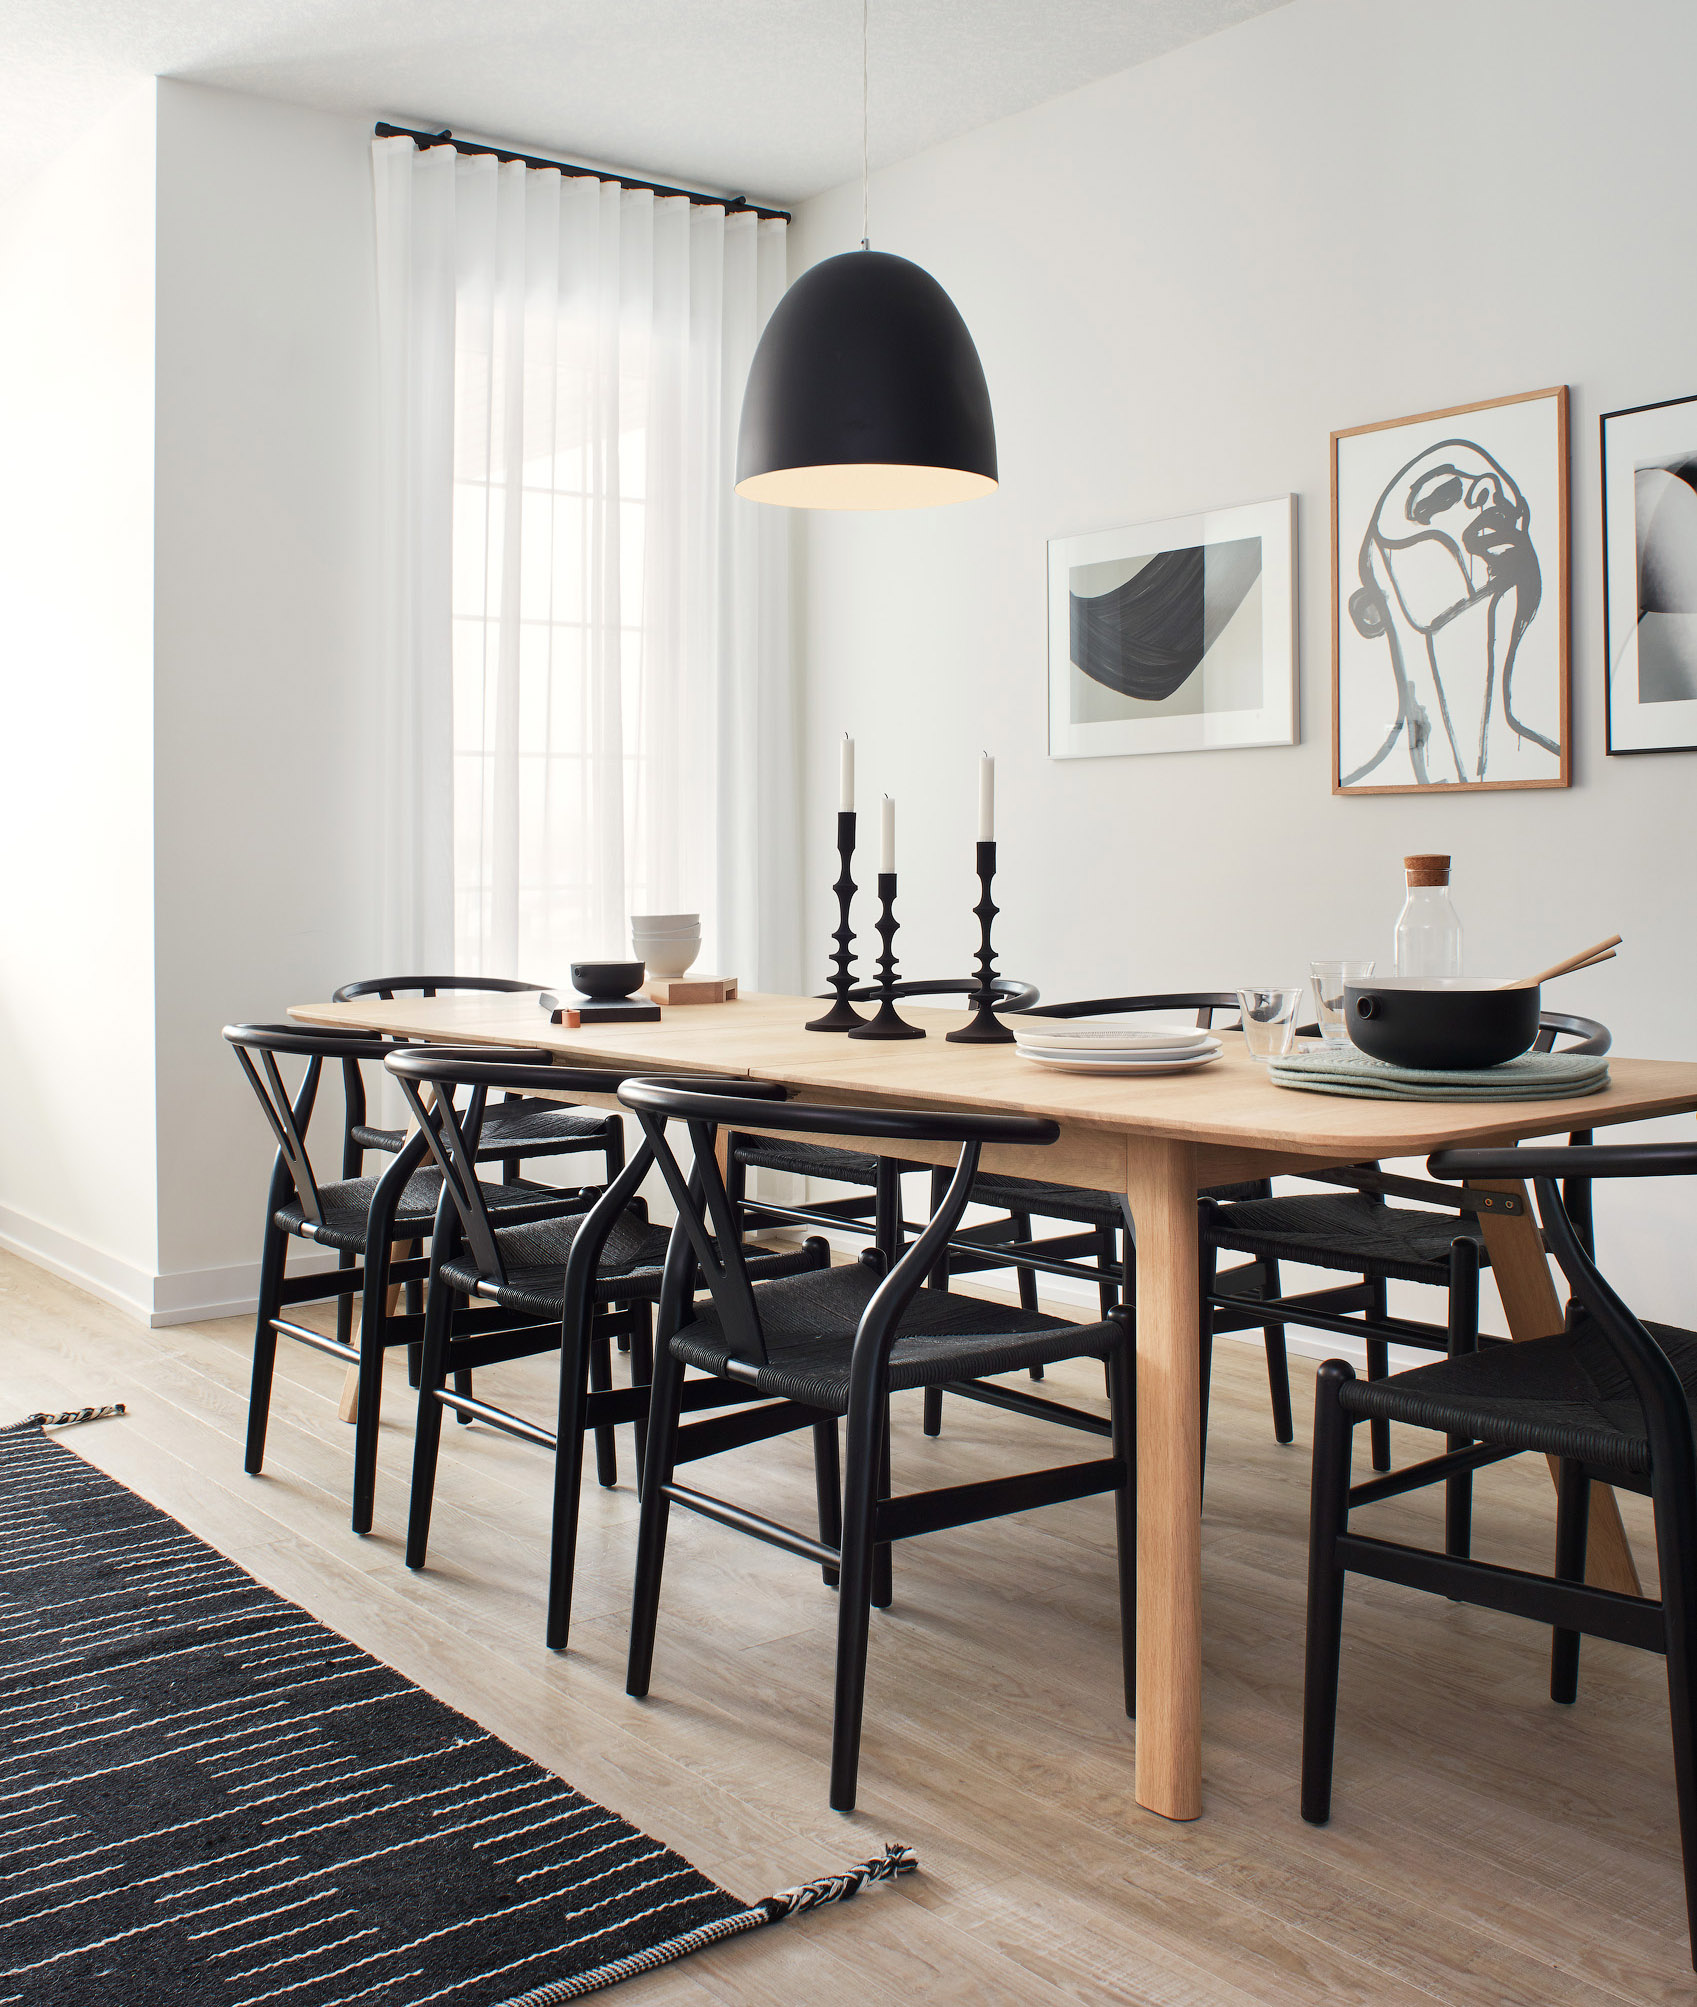 Modern Scandi dining room with wood table, black chairs, and white walls with modern artwork